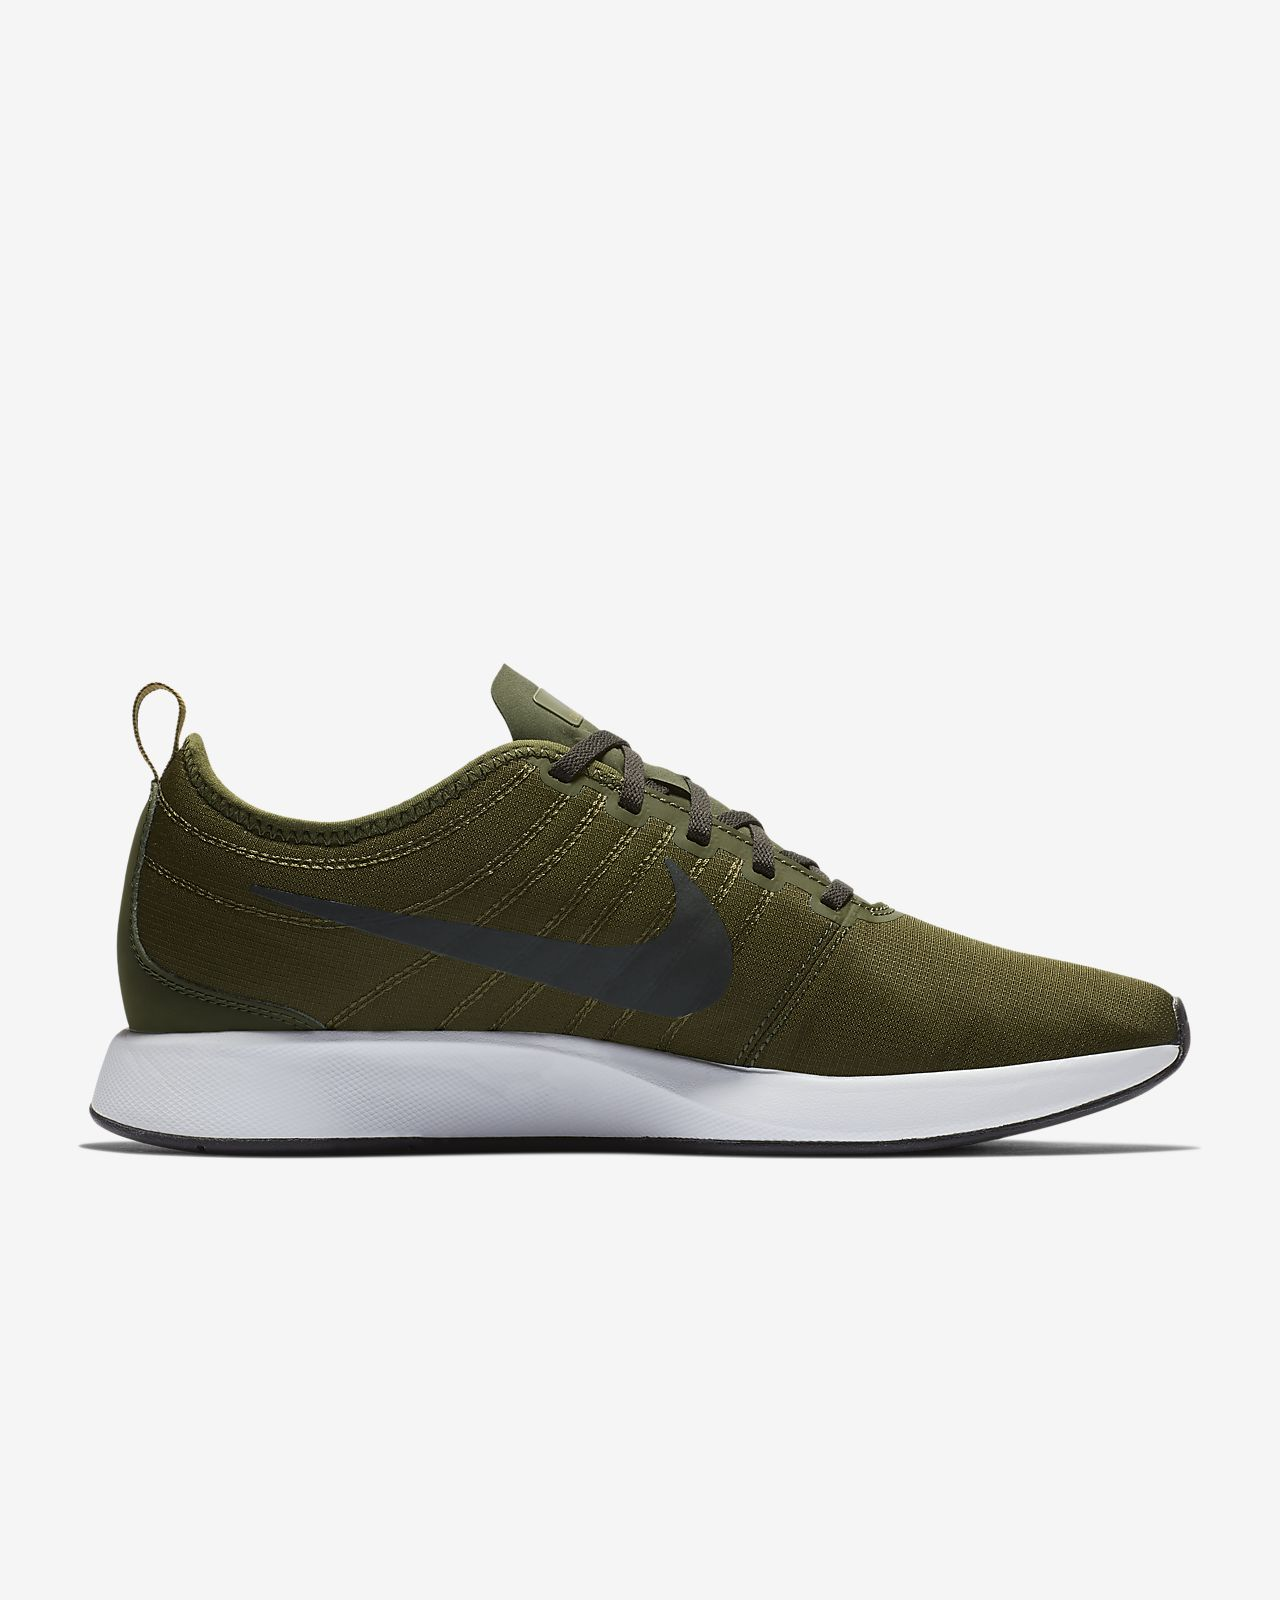 premium selection adc1f 460ad ... Chaussure Nike Dualtone Racer pour Homme